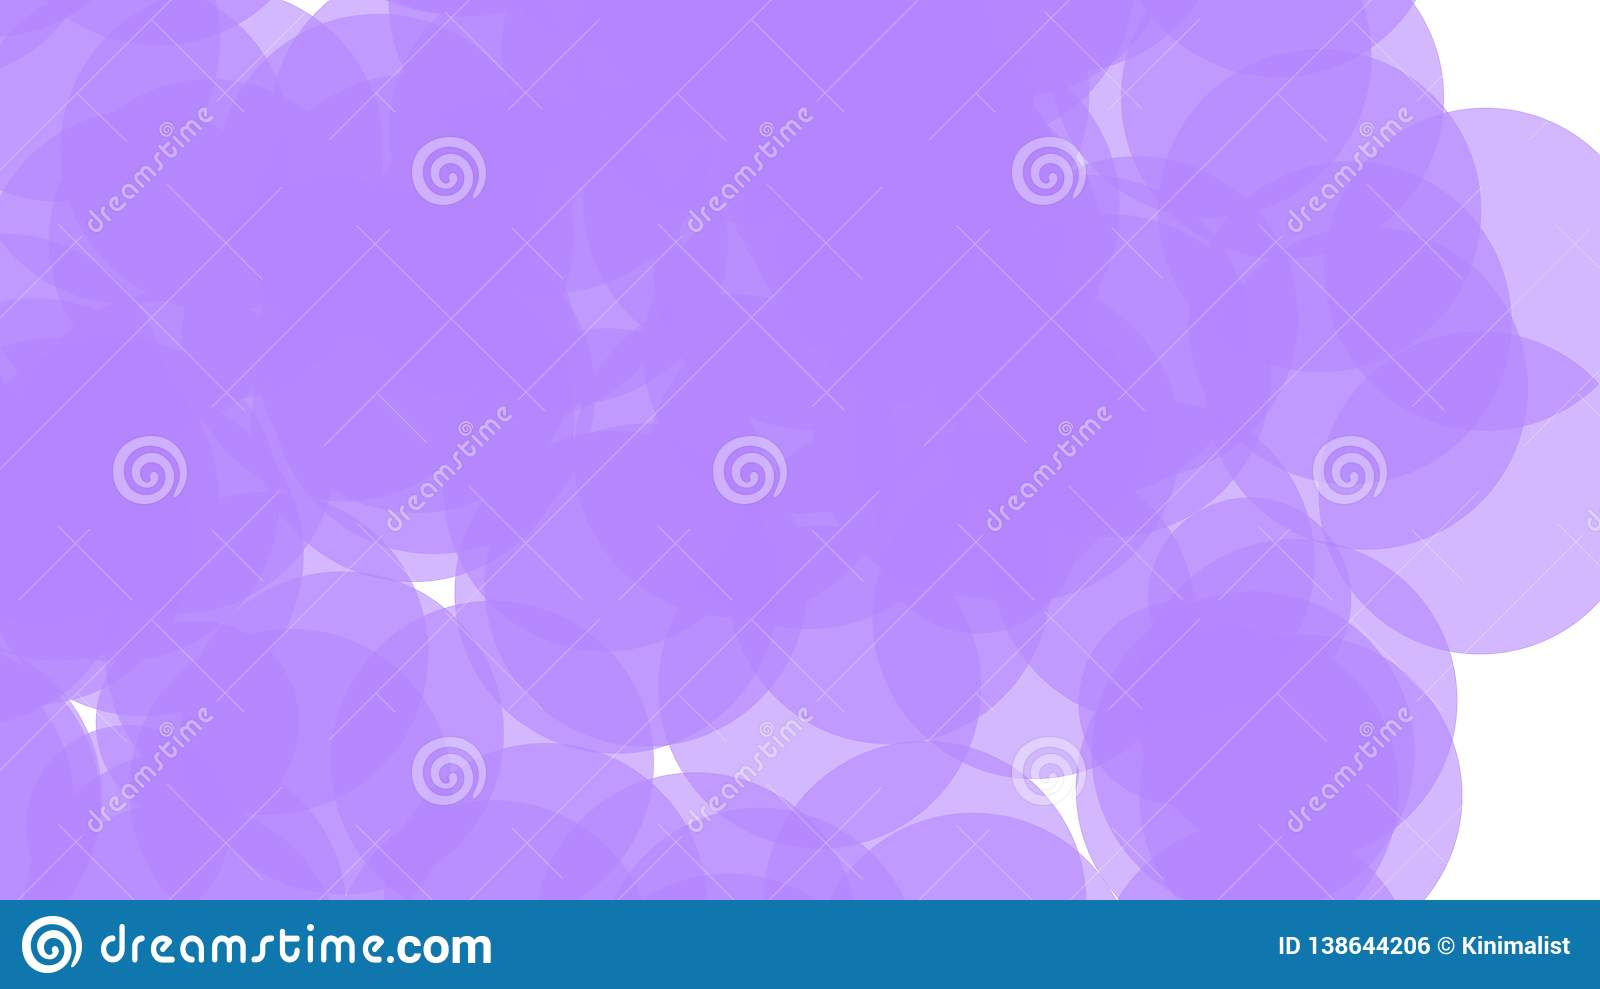 Trendy Abstract Wallpaper With High Resolution At Full Hd